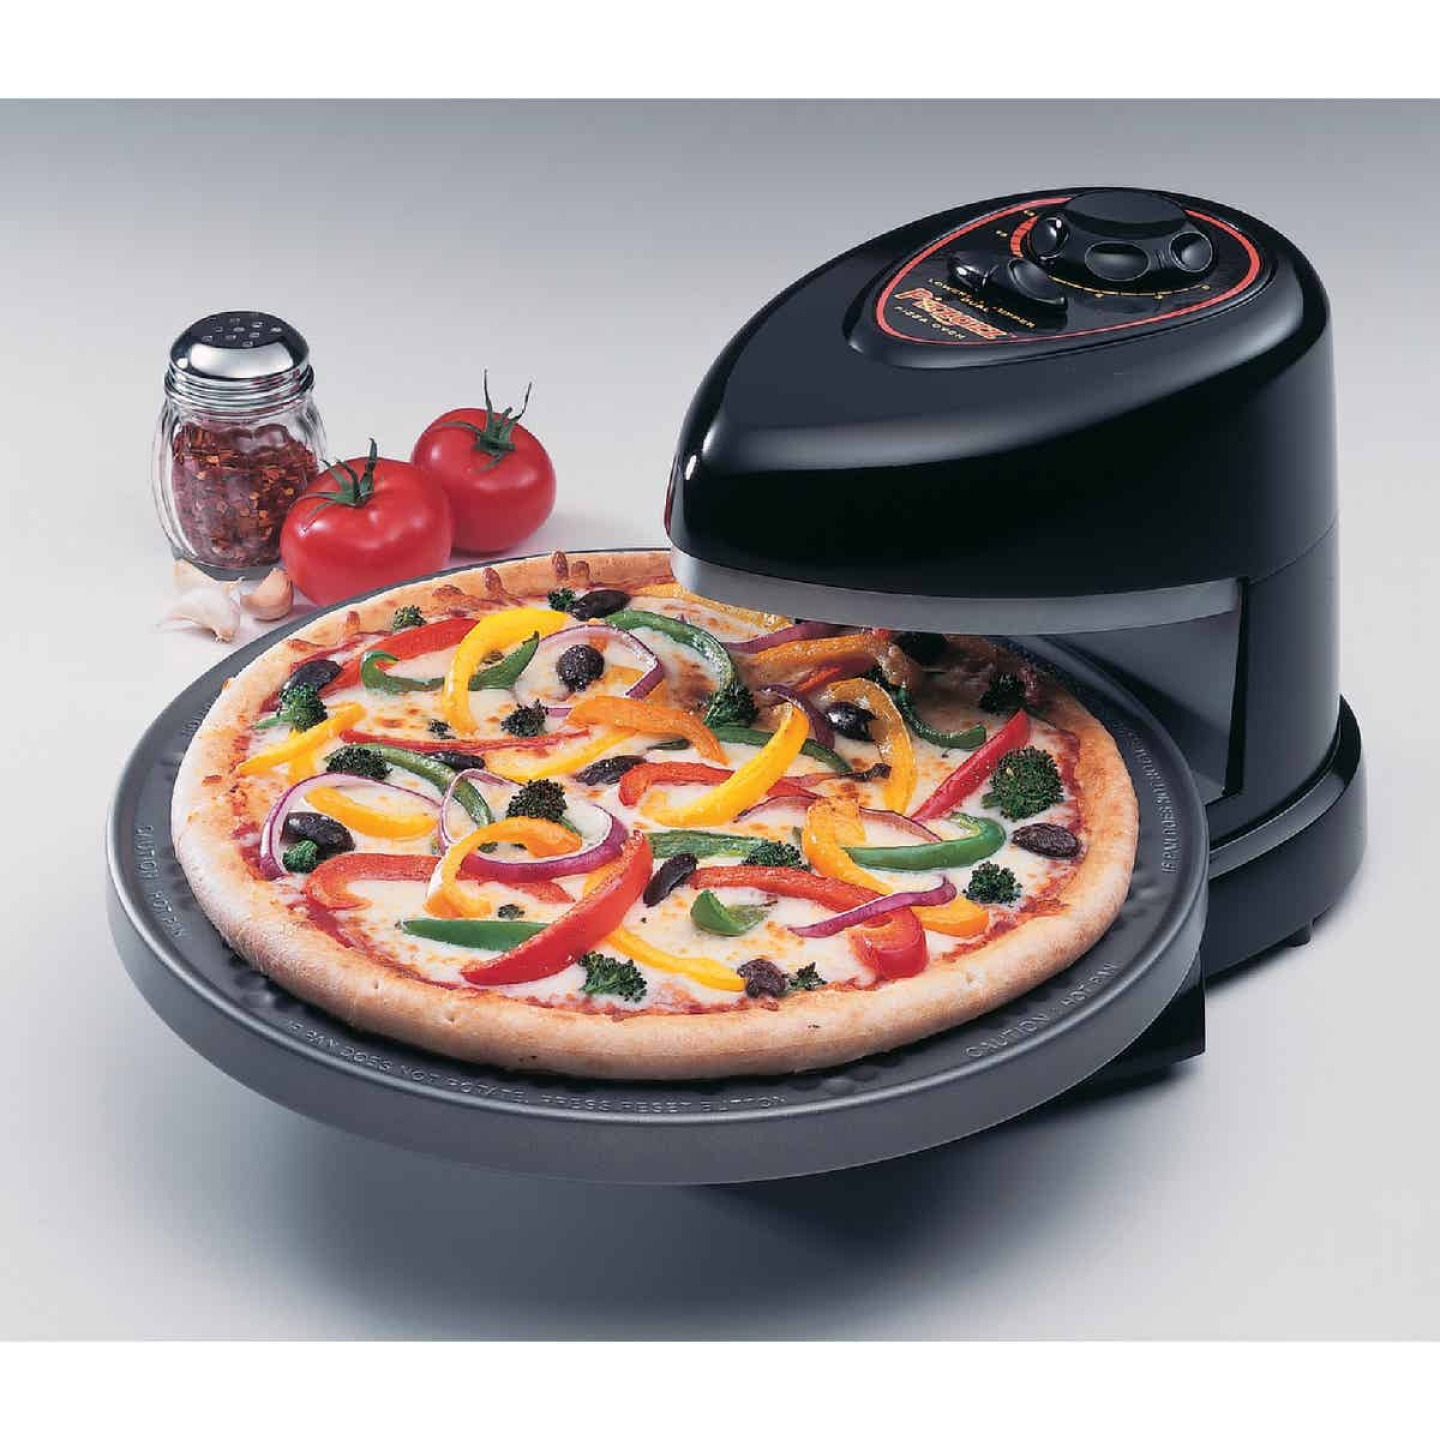 Presto Pizzazz Electric Pizza Maker Image 1